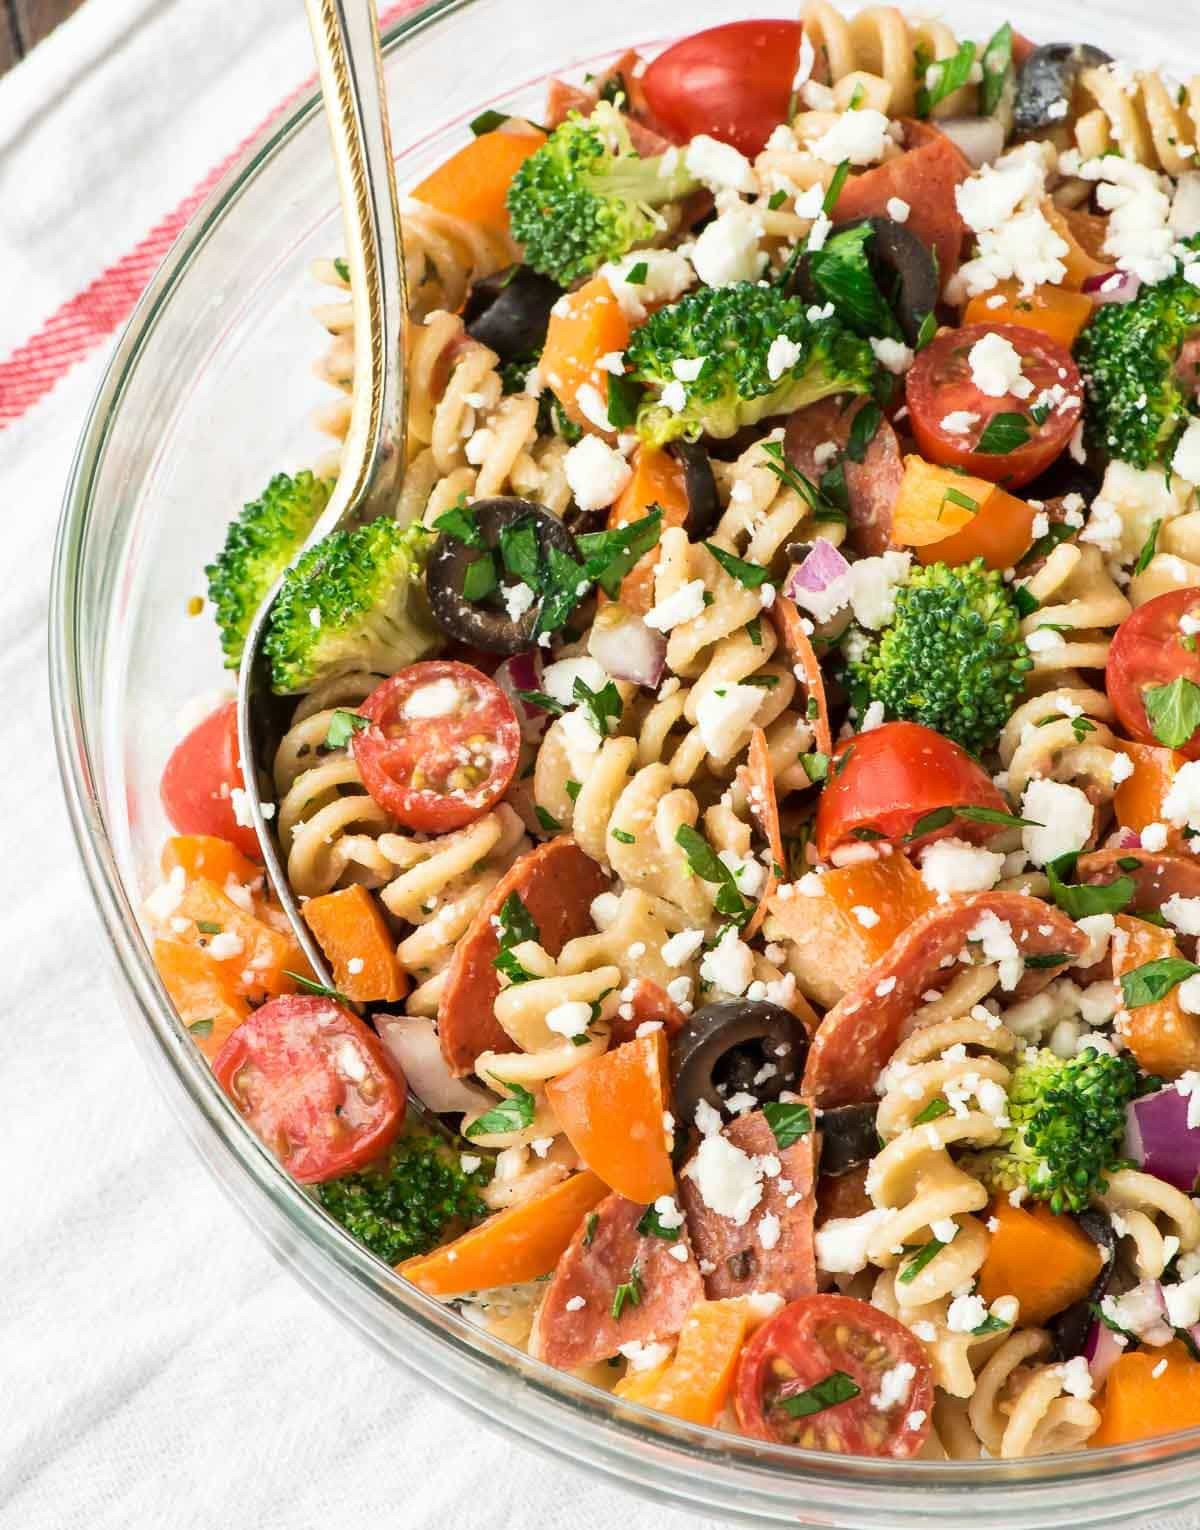 Healthy Pasta Salad  Asian Noodle Salad with Creamy Peanut Dressing